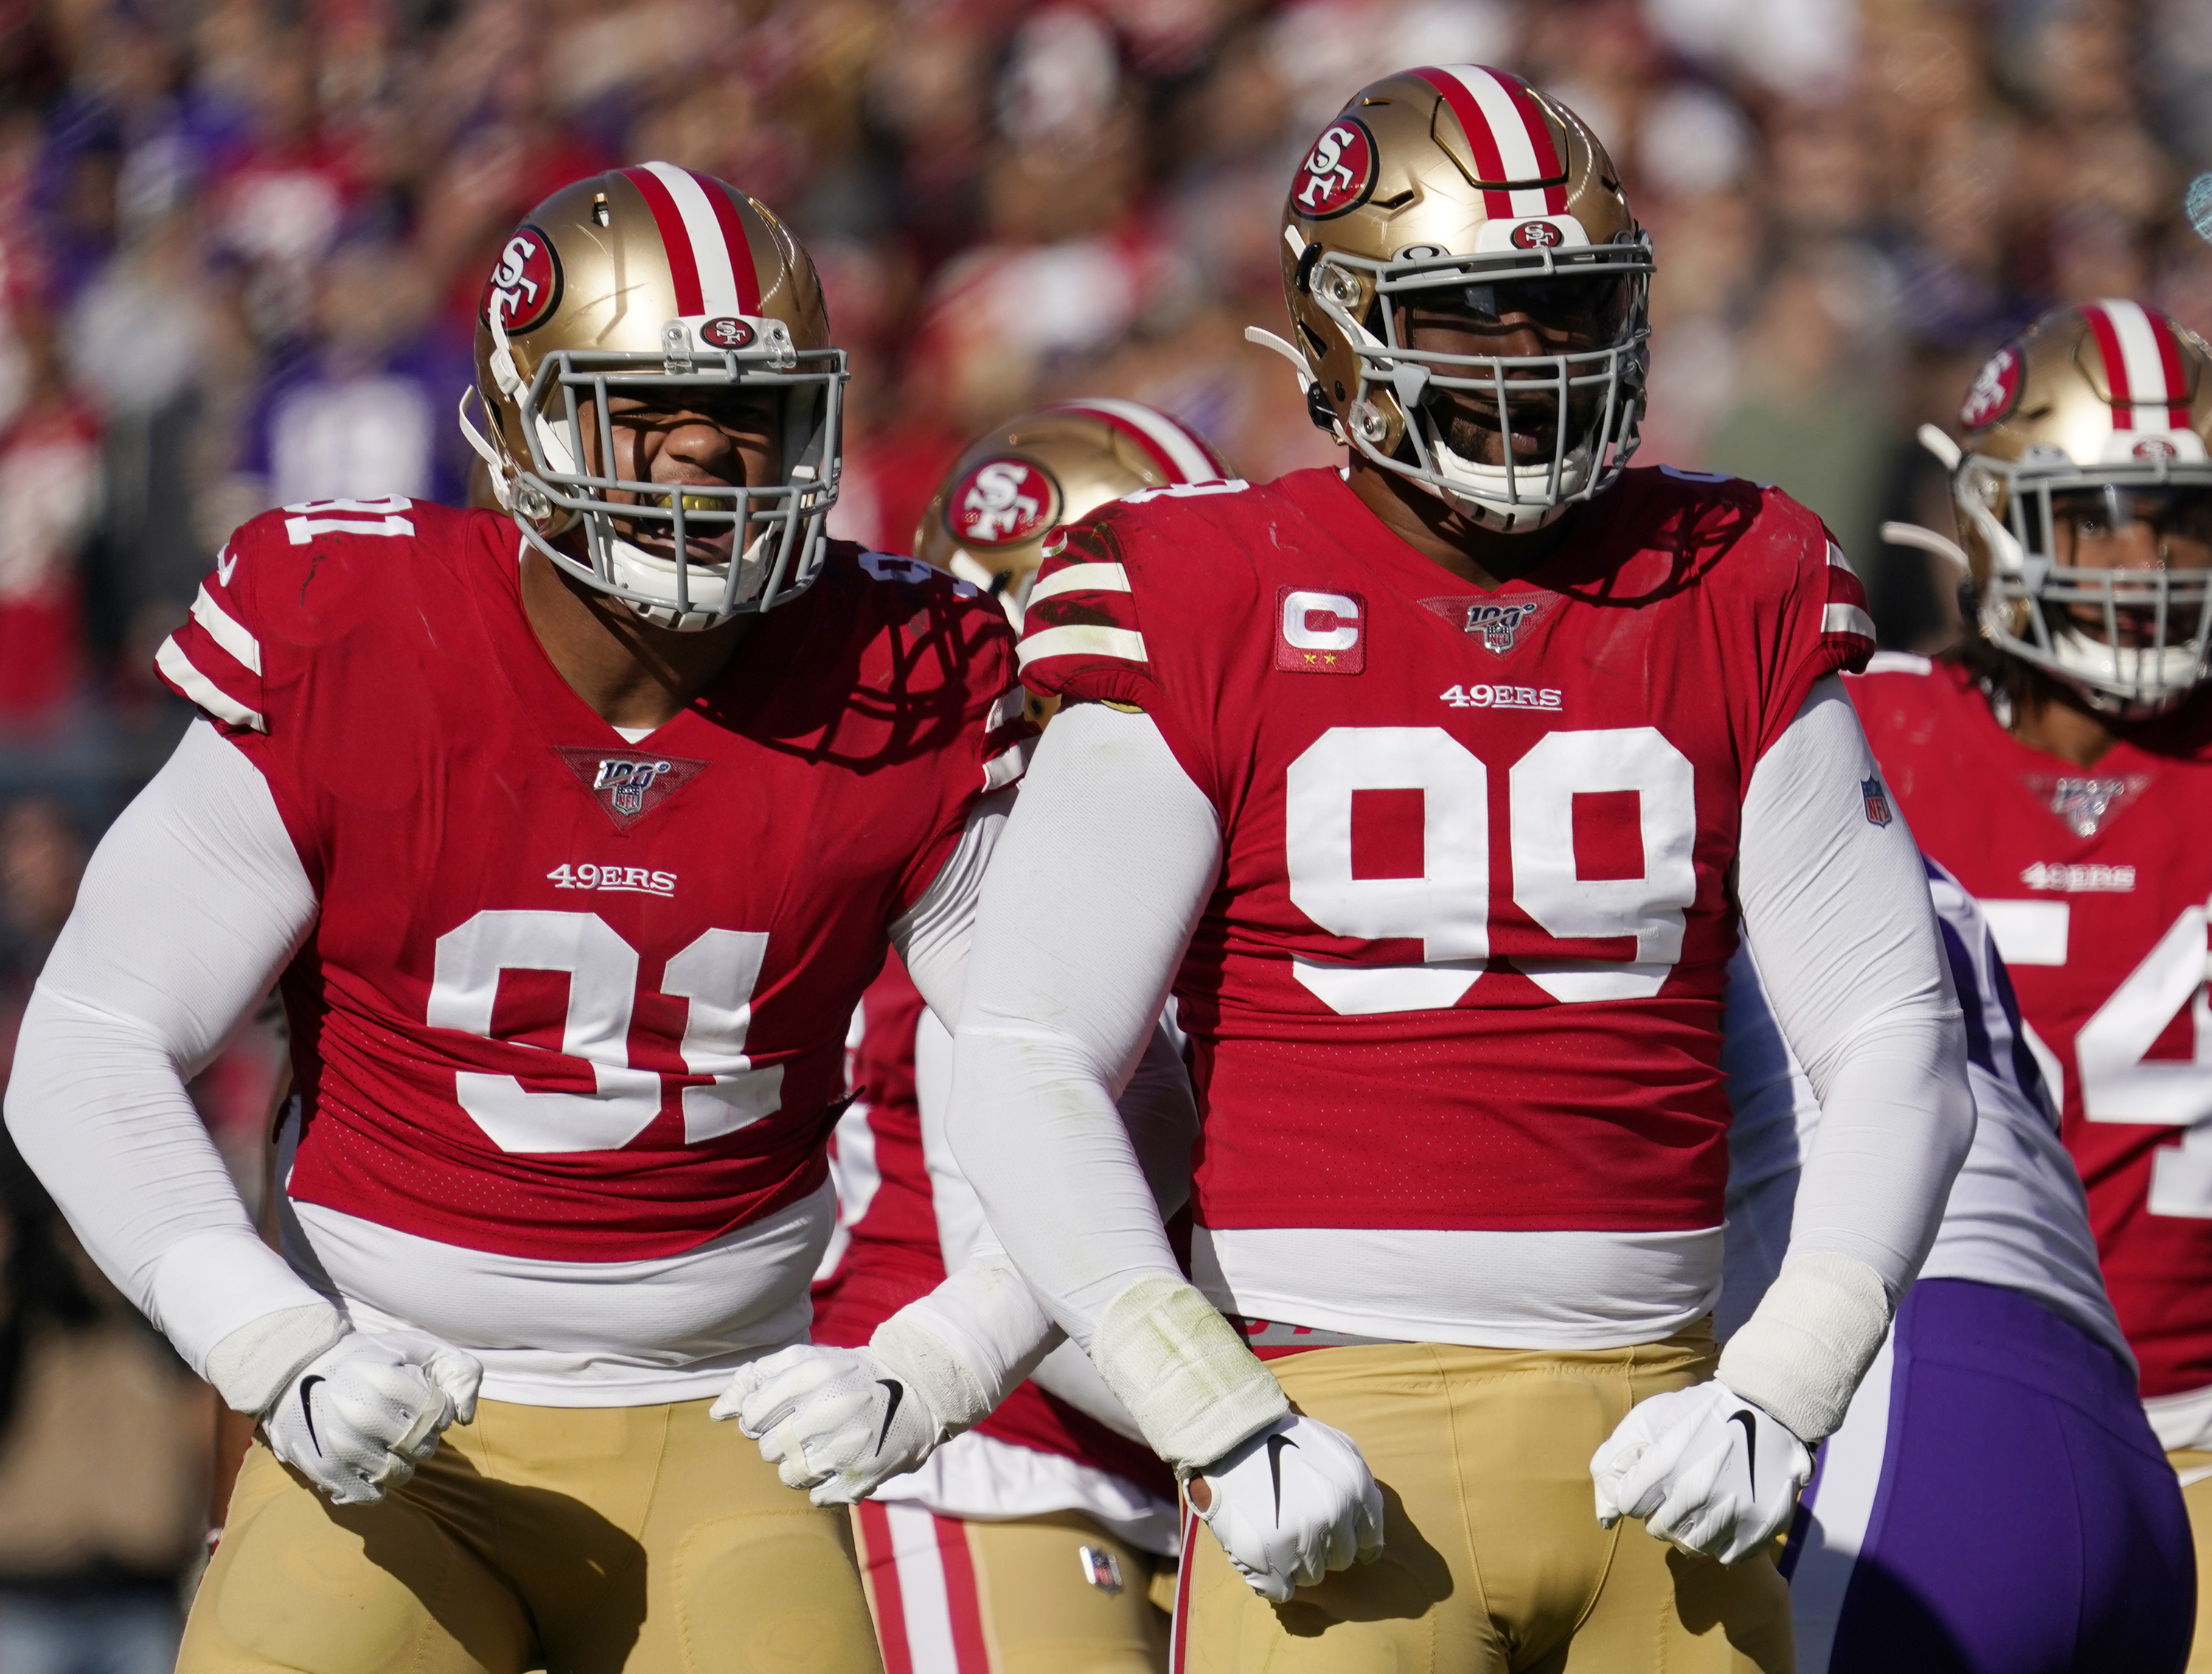 49ers lock up Armstead, plan deal for Buckner